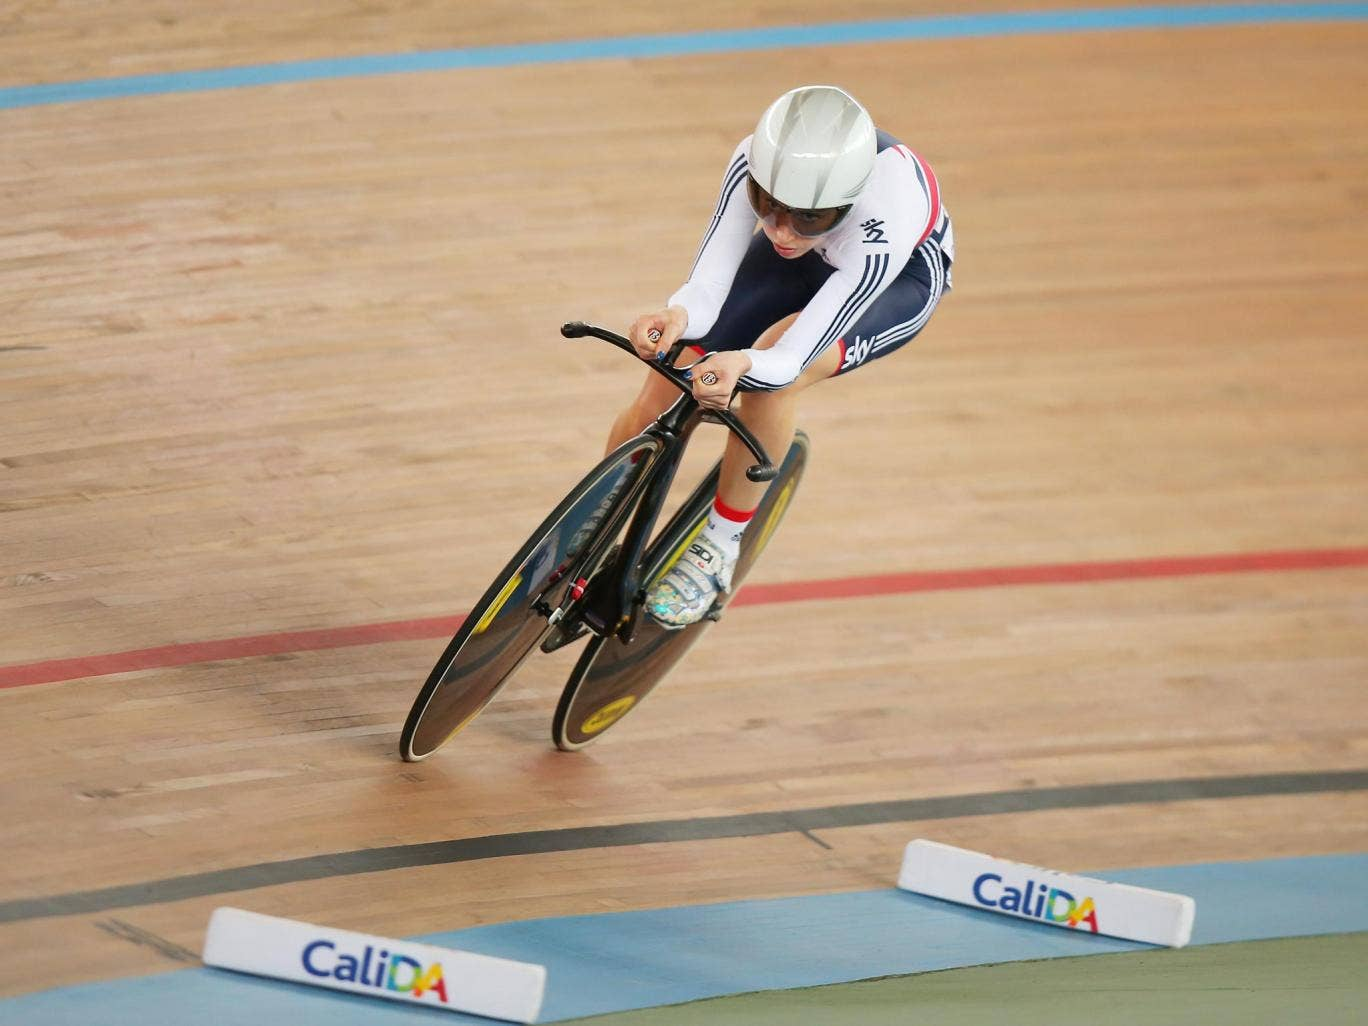 Laura Trott claimed silver in the women's omnium to end Team GB's campaign at the Track Cycling World Championships